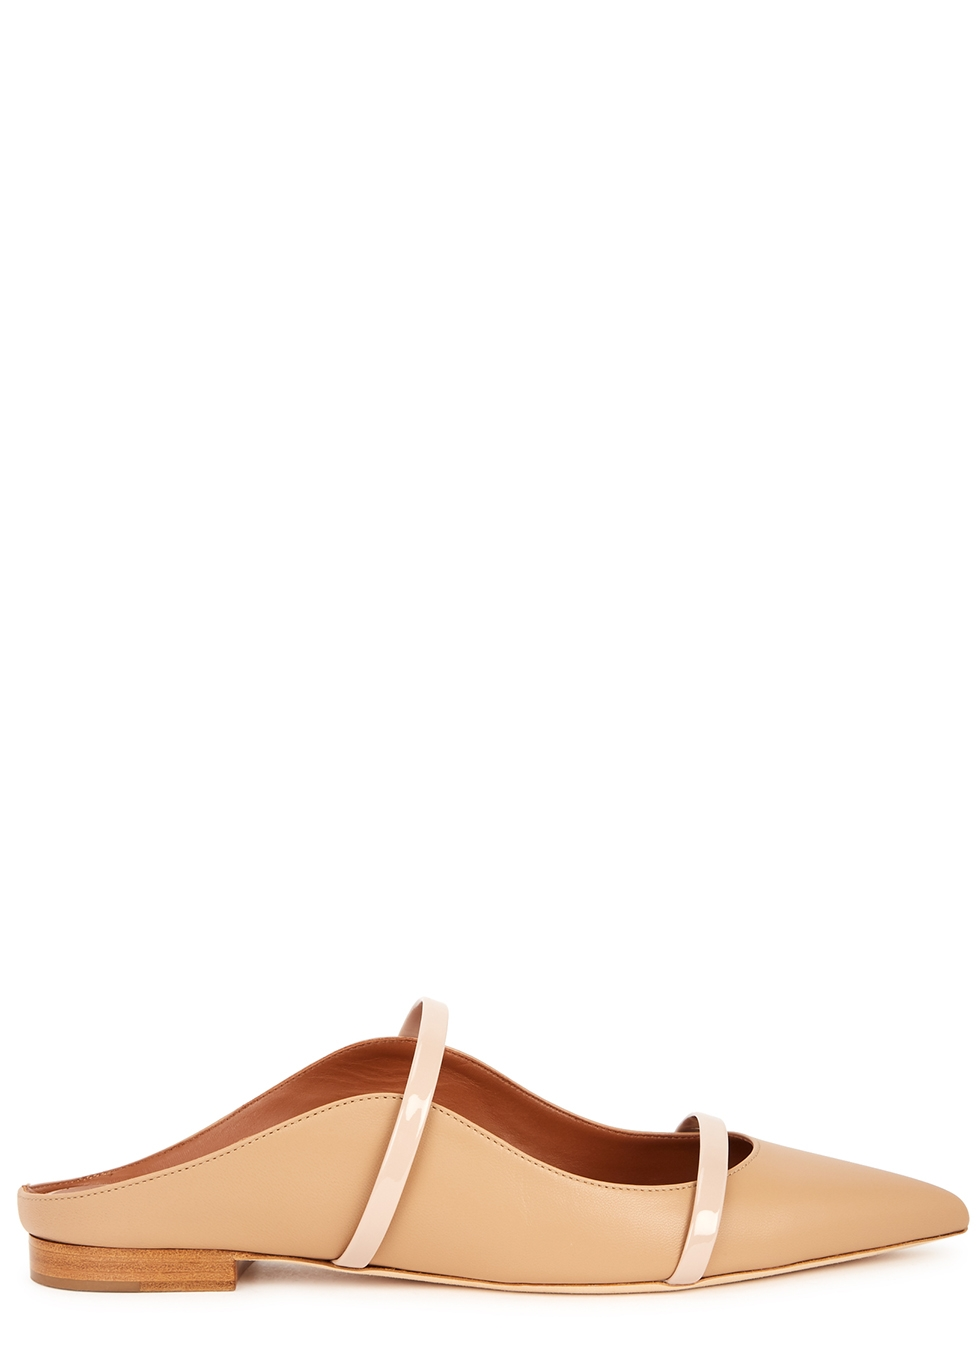 Maureen 10 almond leather mules